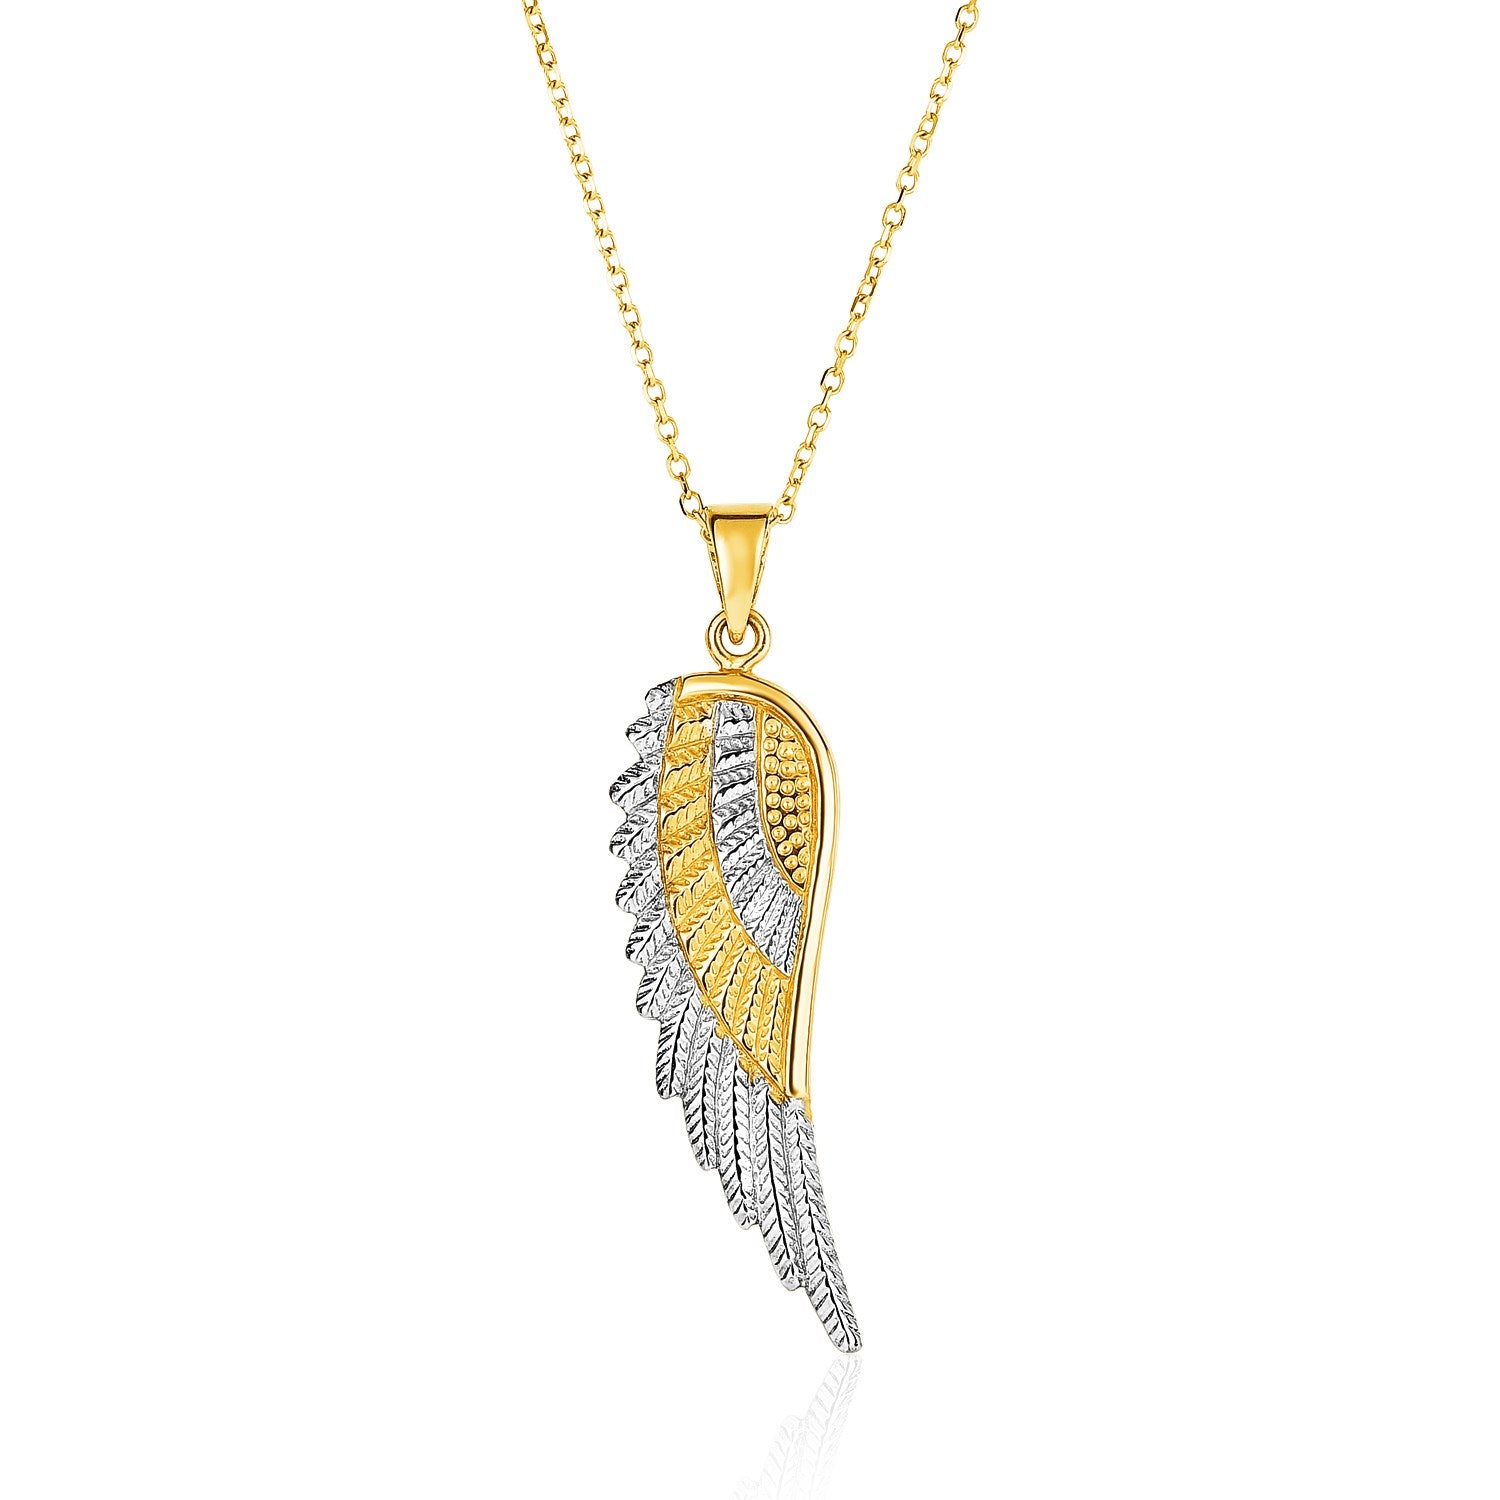 Original New York Style  14K Two-Tone Yellow and White Gold Angel Wing Pendant